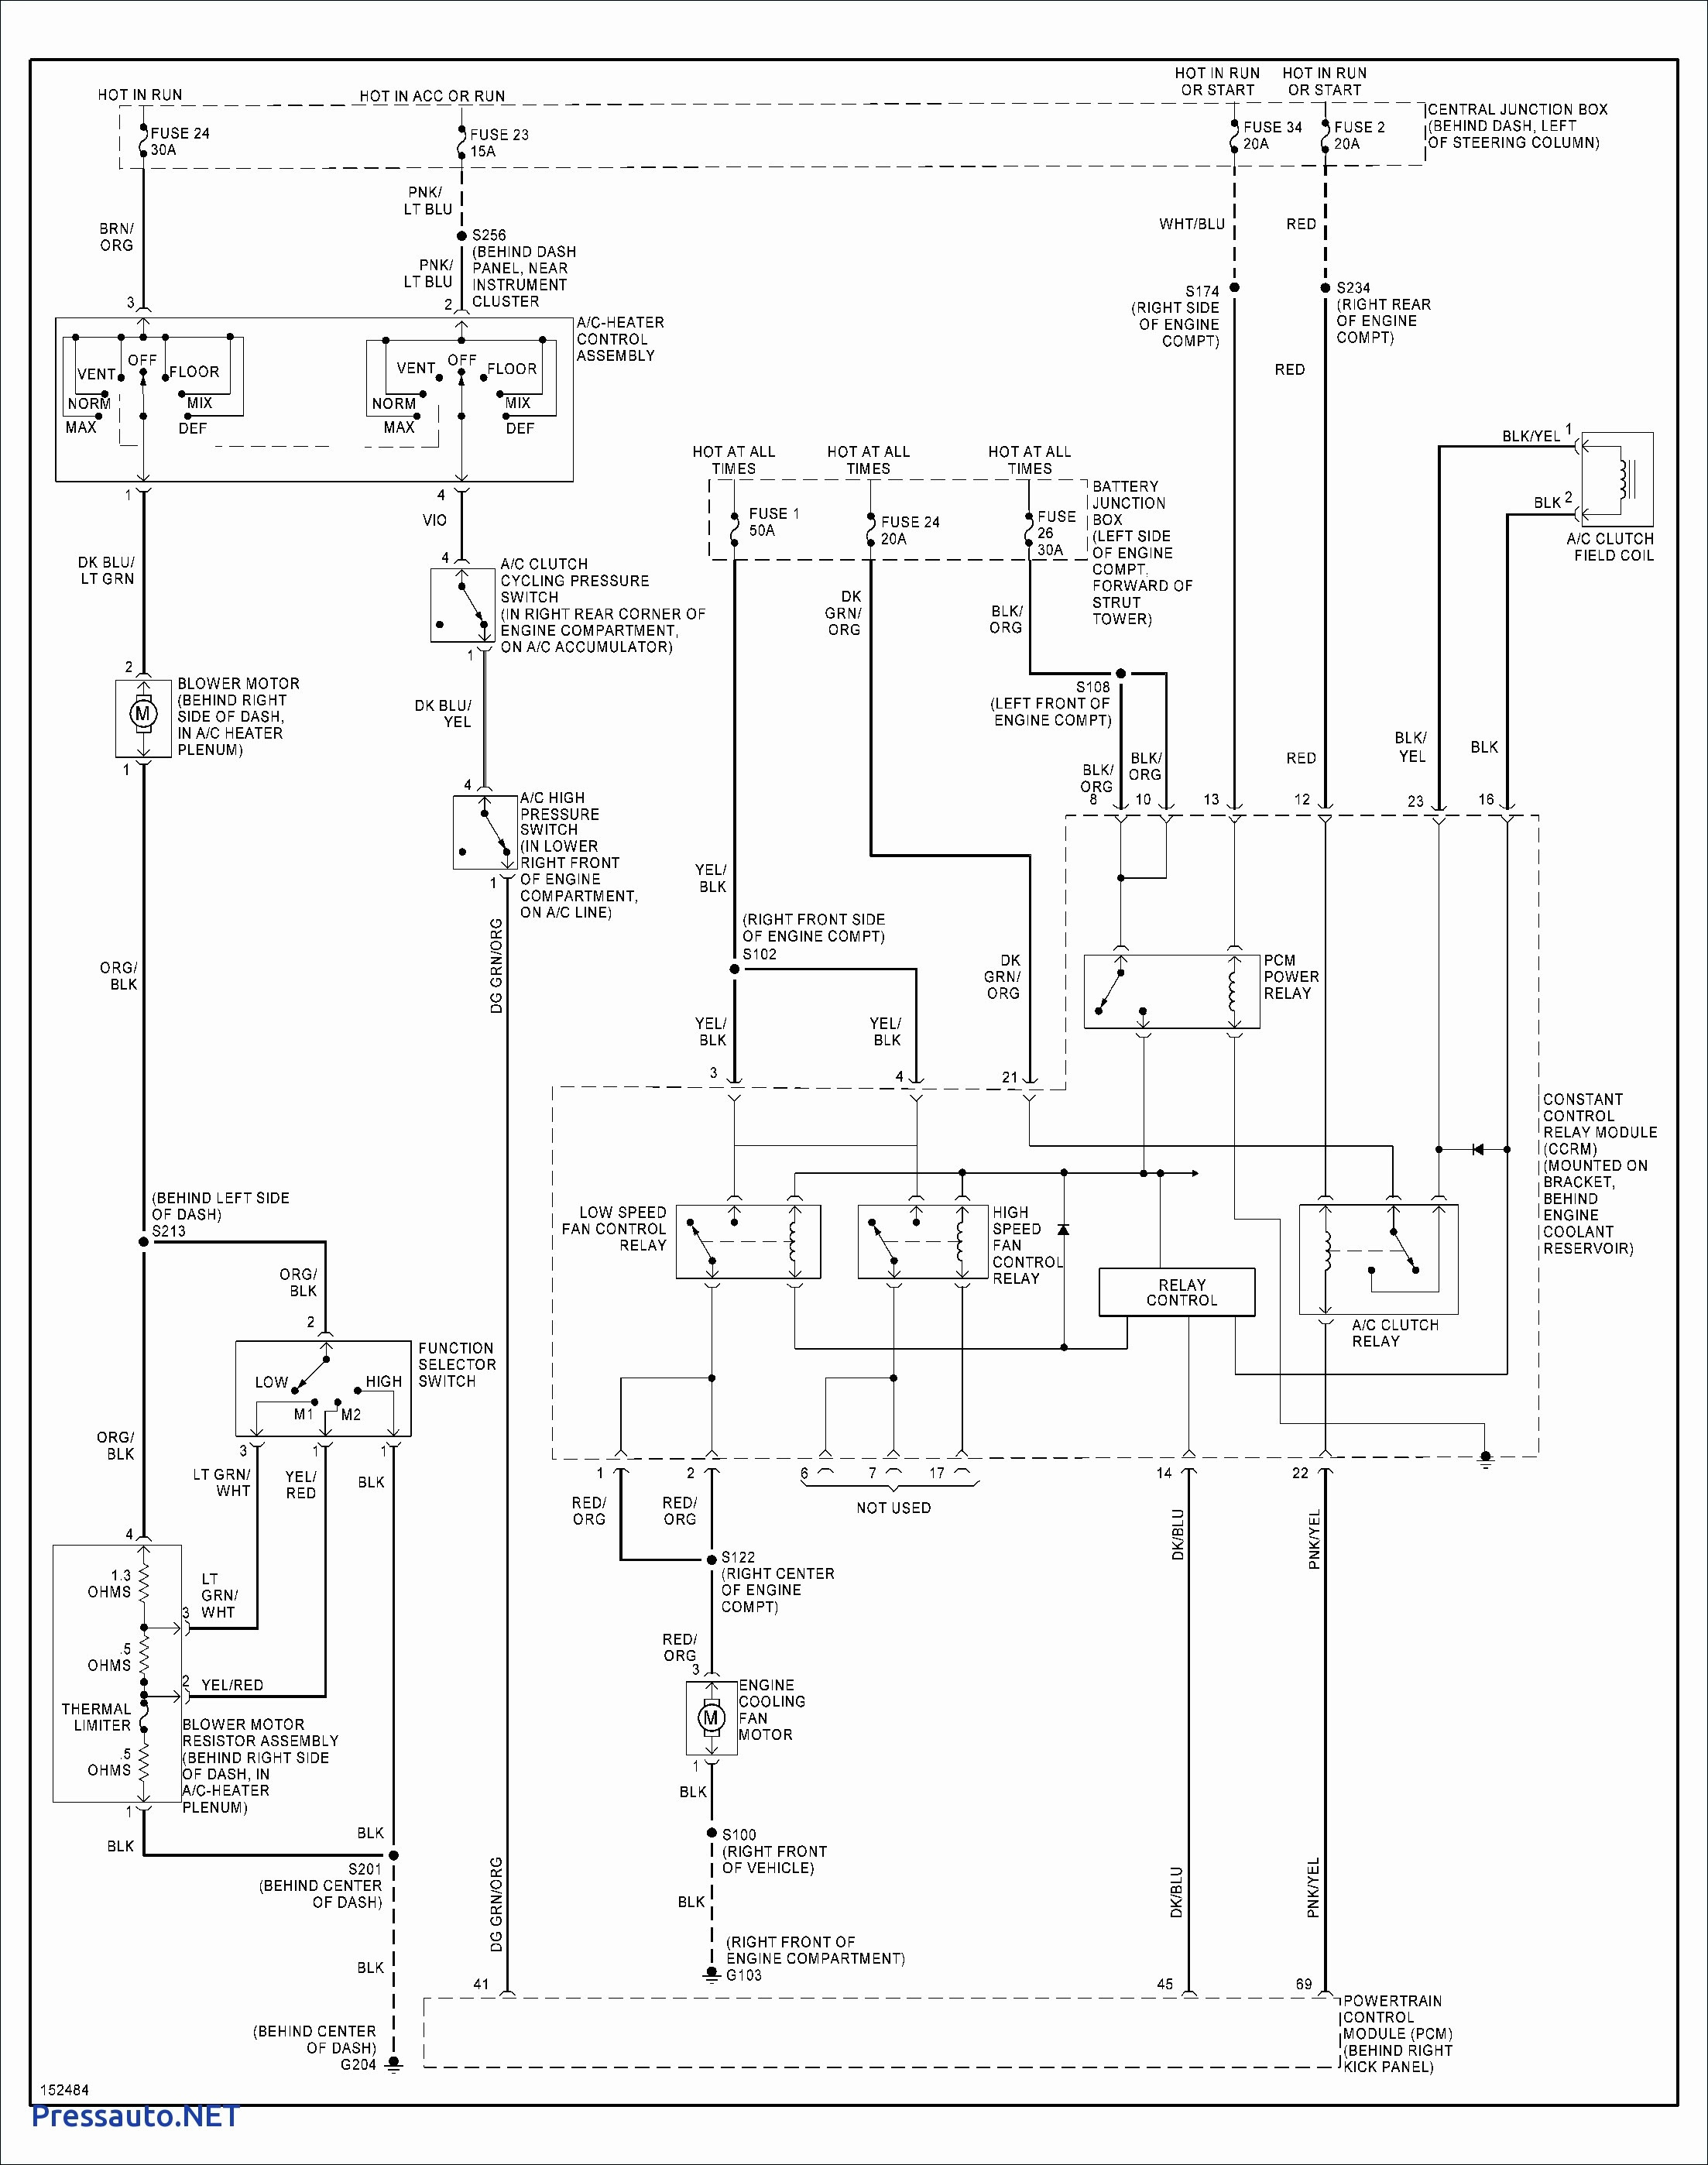 Square D Well Pump Pressure Switch Wiring Diagram - Electricity Site - Water Pump Pressure Switch Wiring Diagram